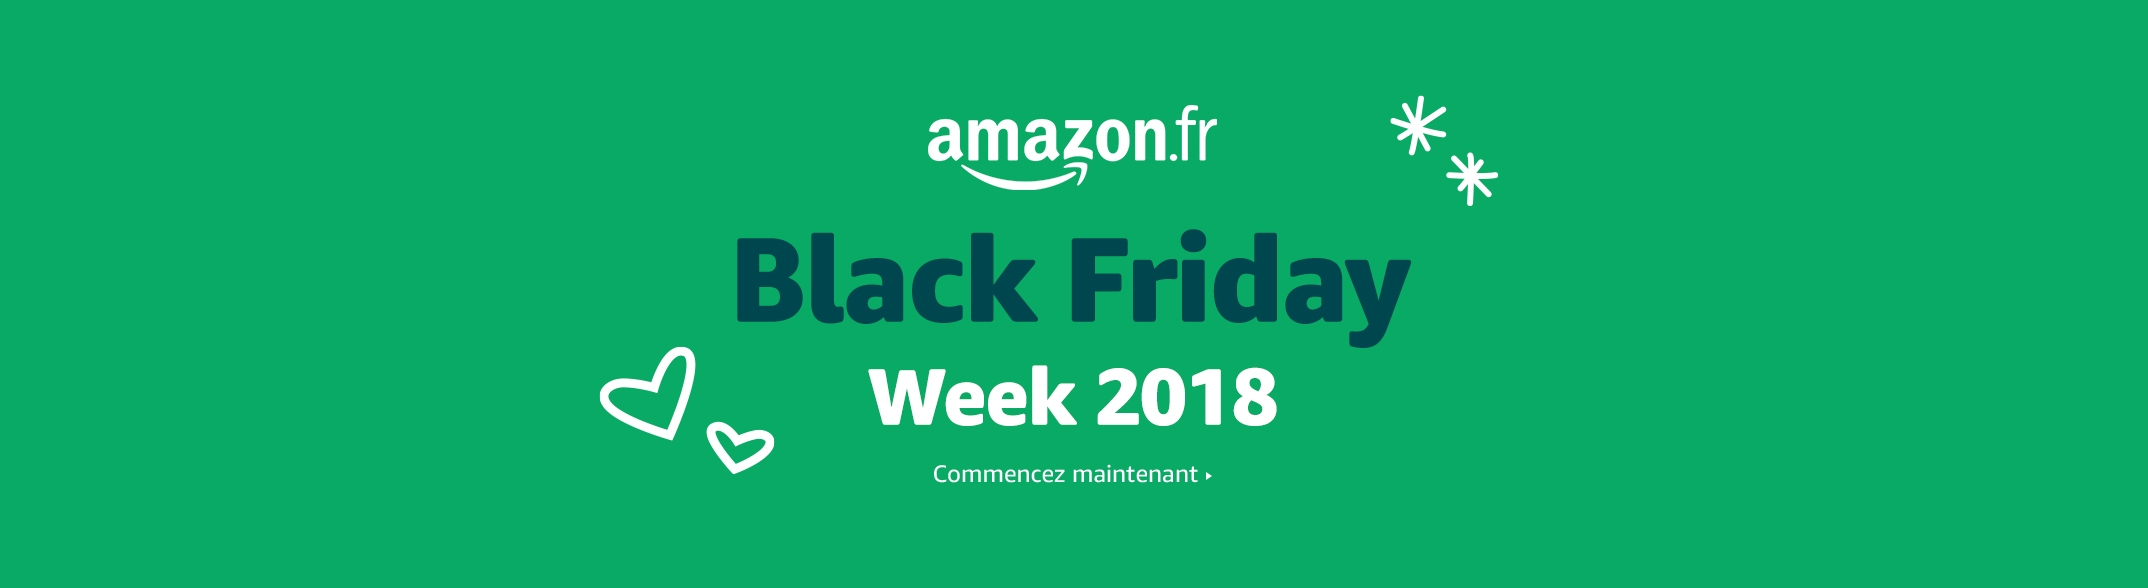 black friday 2018 les meilleurs bons plans jeux vid o geektest. Black Bedroom Furniture Sets. Home Design Ideas